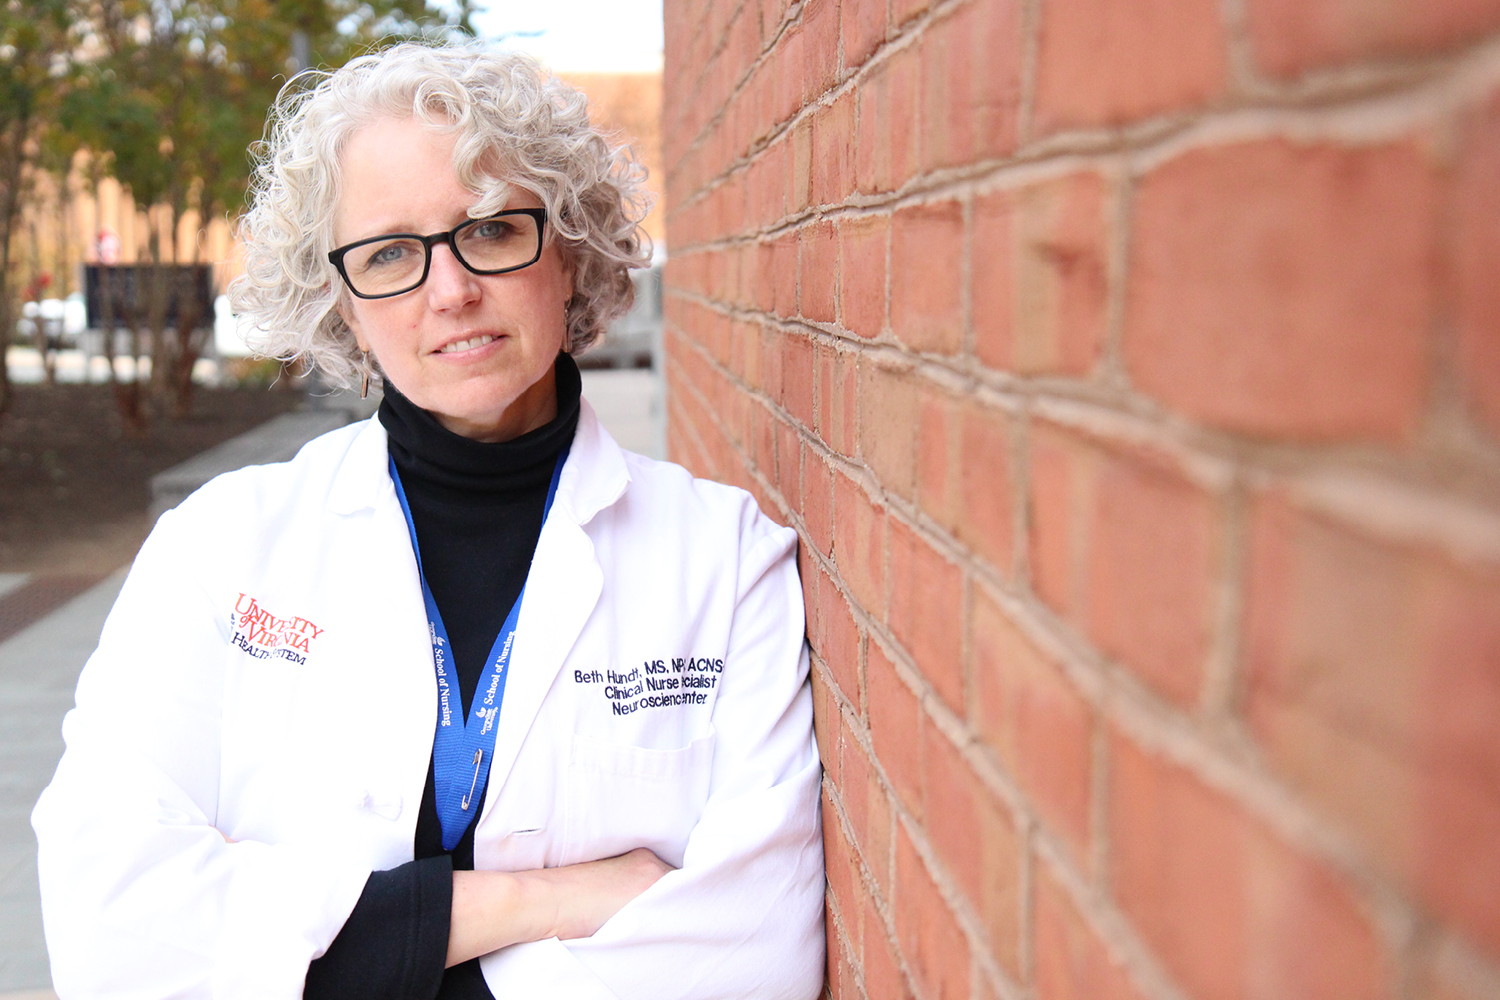 Beth Hundt, a critical care nurse and graduate nursing student, believes getting patients out of hospital environments relieves the stress of patients, family members and clinicians.